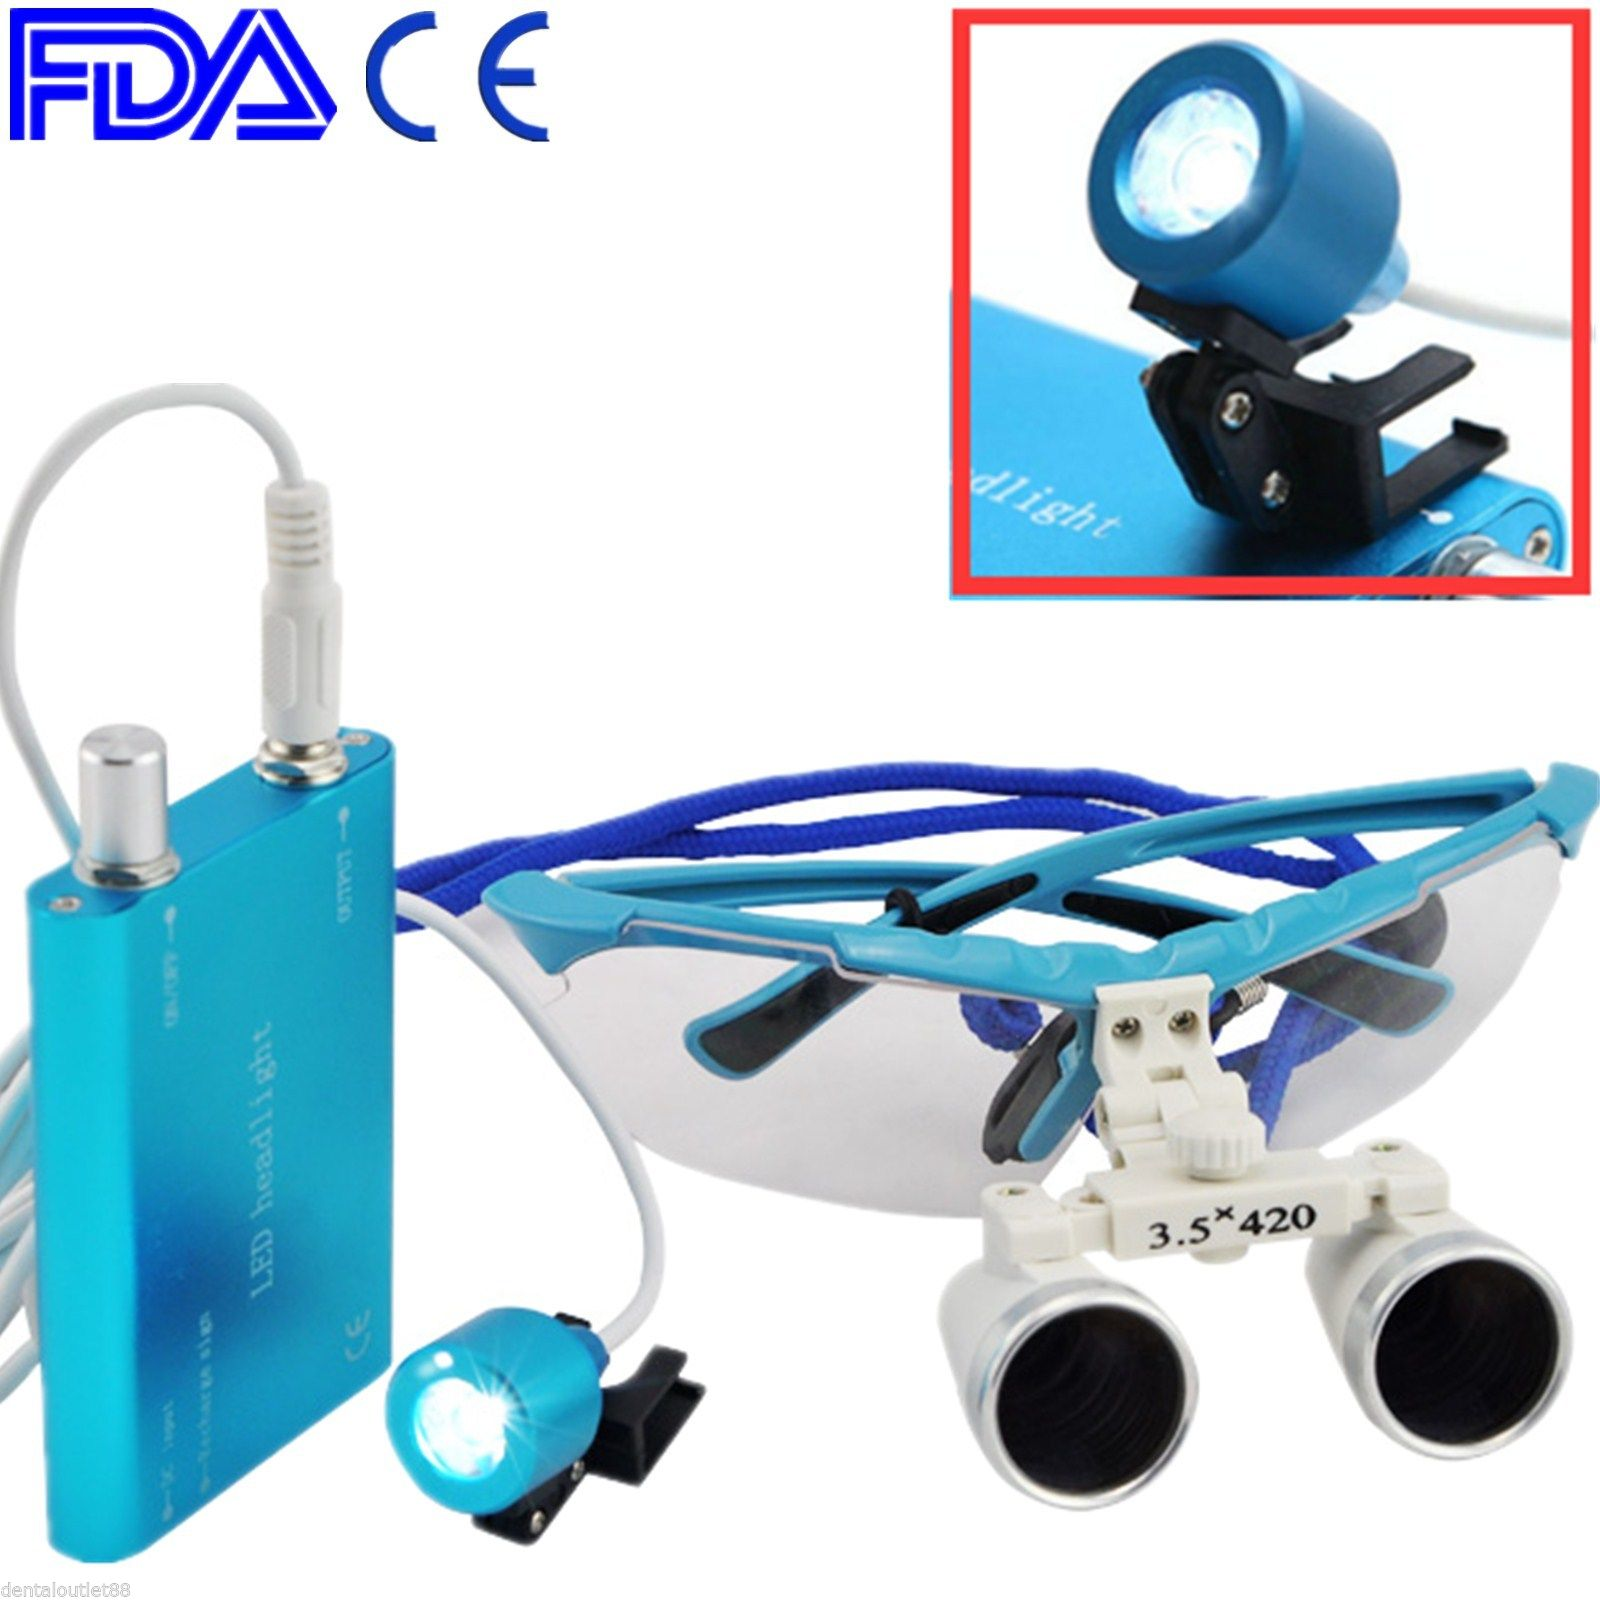 100% High Quality Dental Surgical Binocular Loupe 3.5X 420mm LED Head Light Lamp-BLUE 2017 blue high quality magnification 2 5x dental loupe with portable led headlight lamp 188044 uc